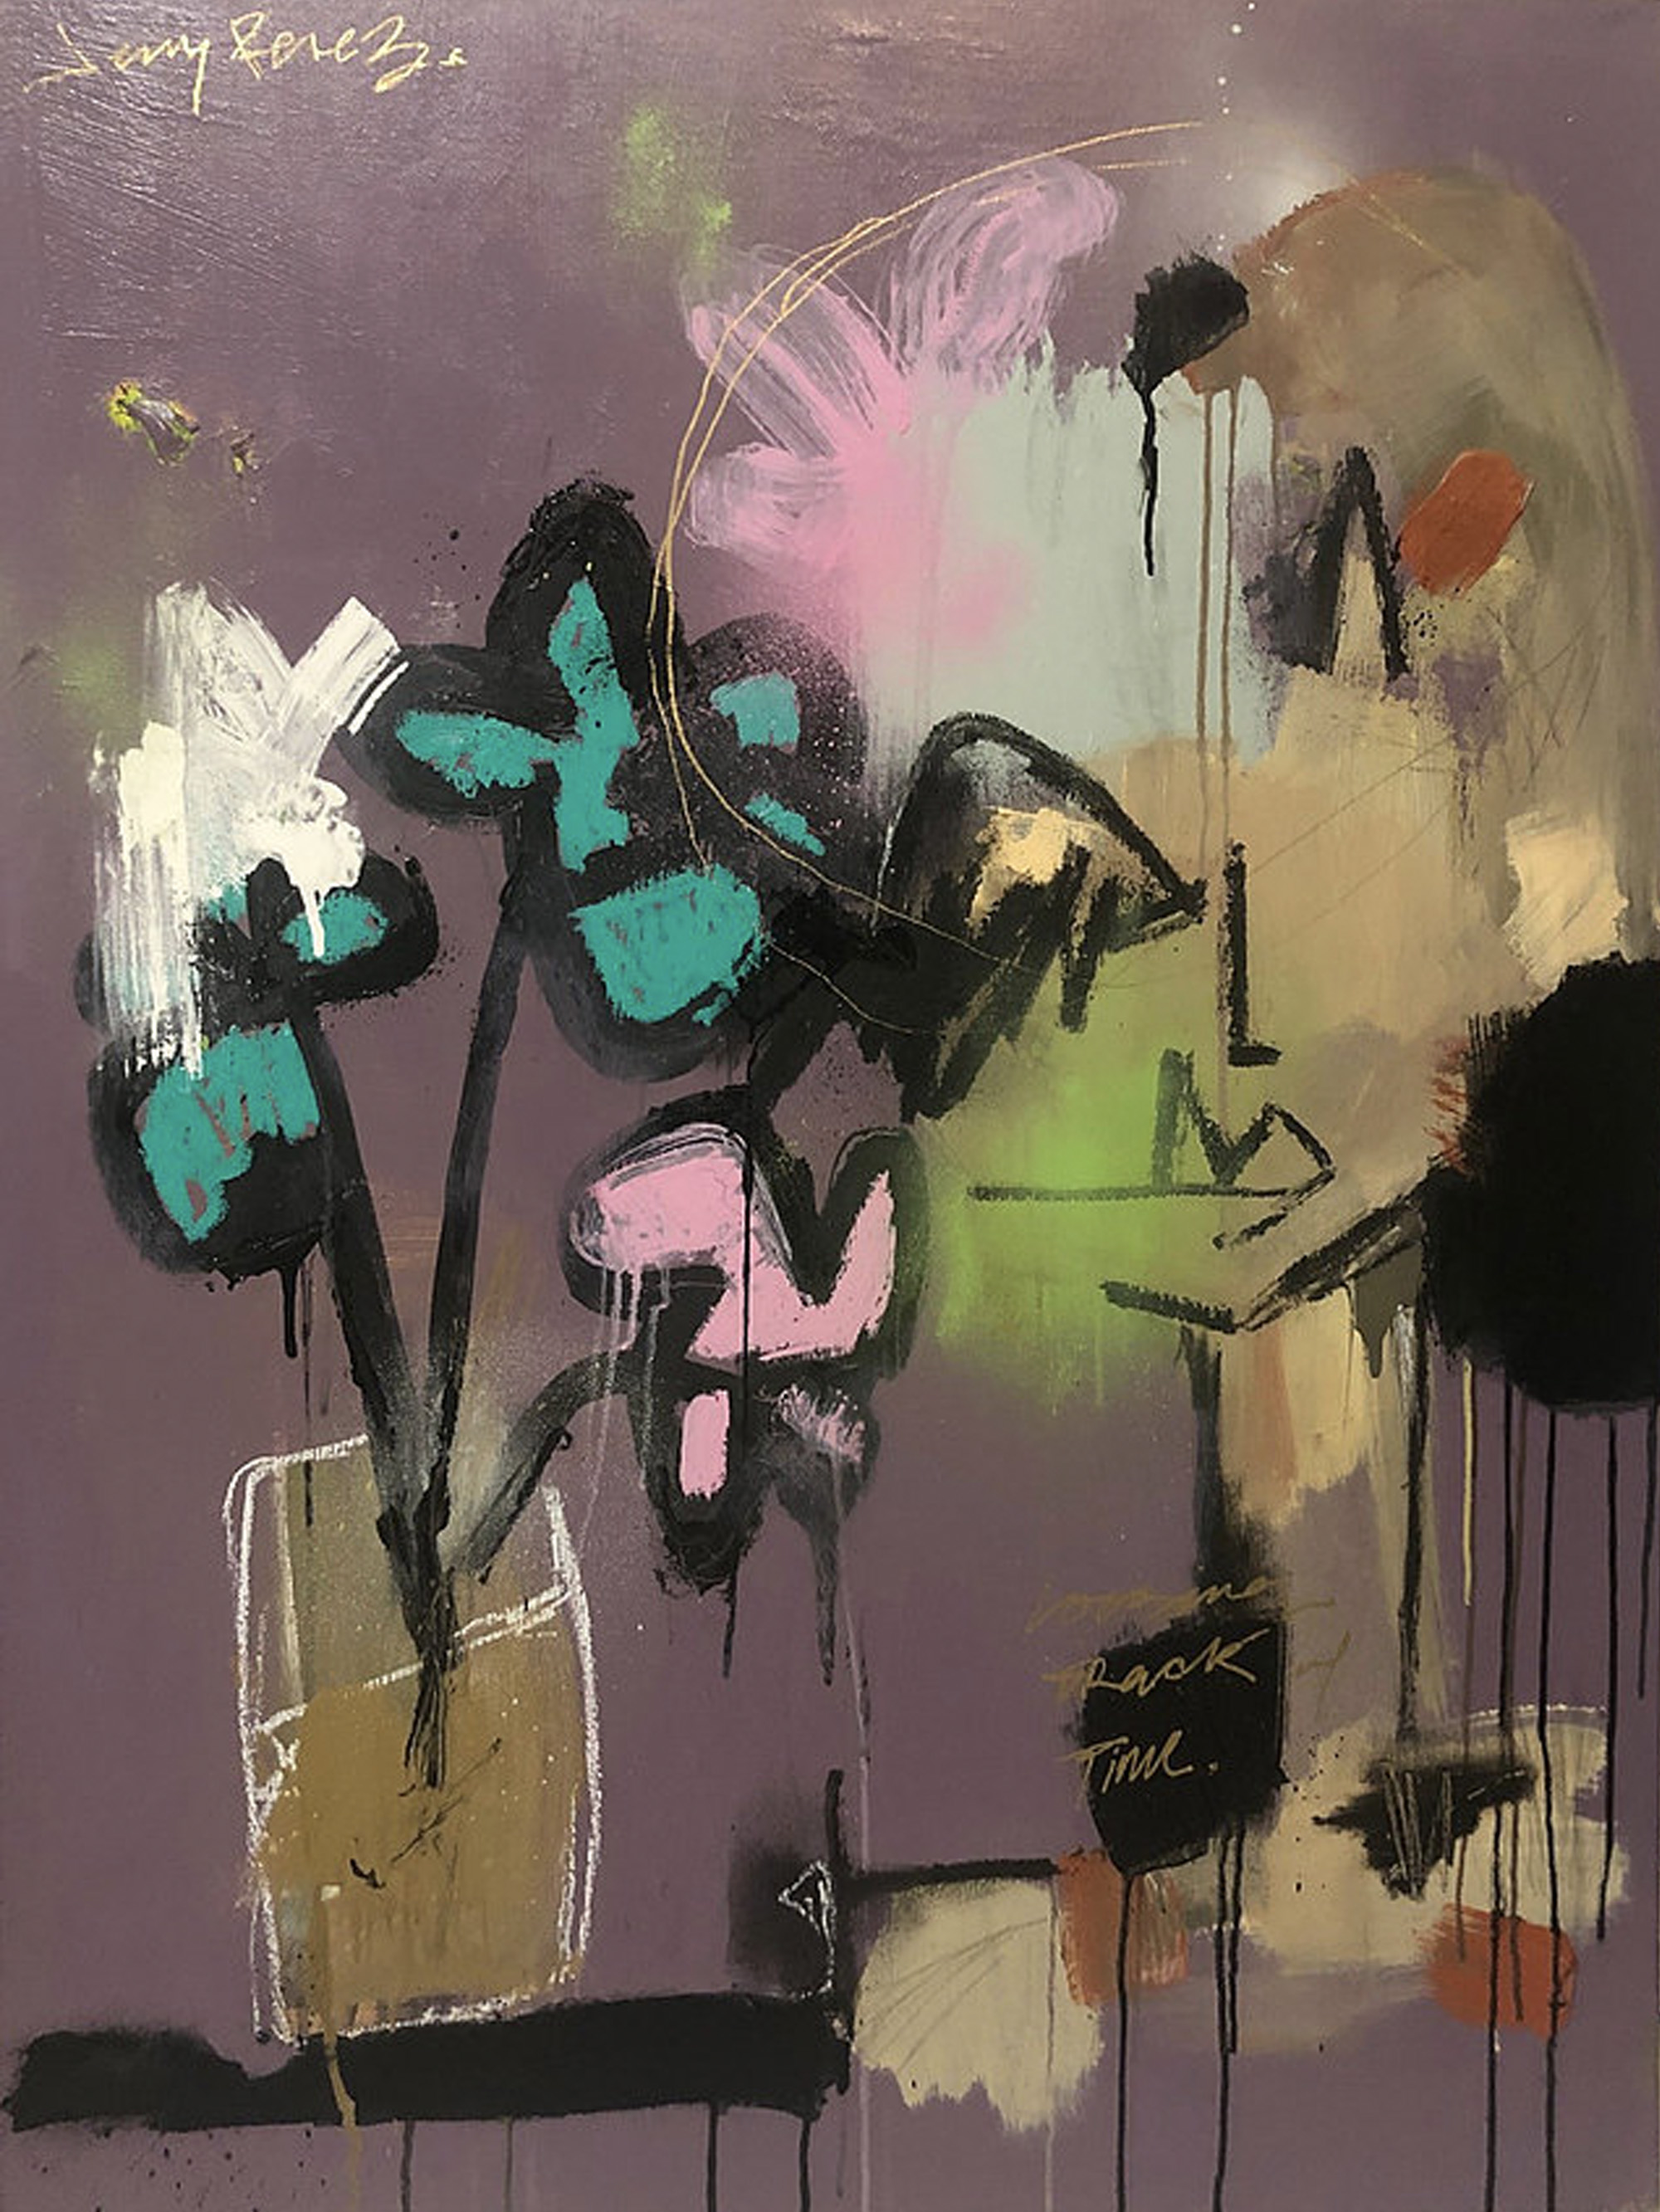 "Catching Feelings (Losing Track of Time) - 30"" x 40"" - Acrylic, aerosol and oil stick on canvas - 2018"